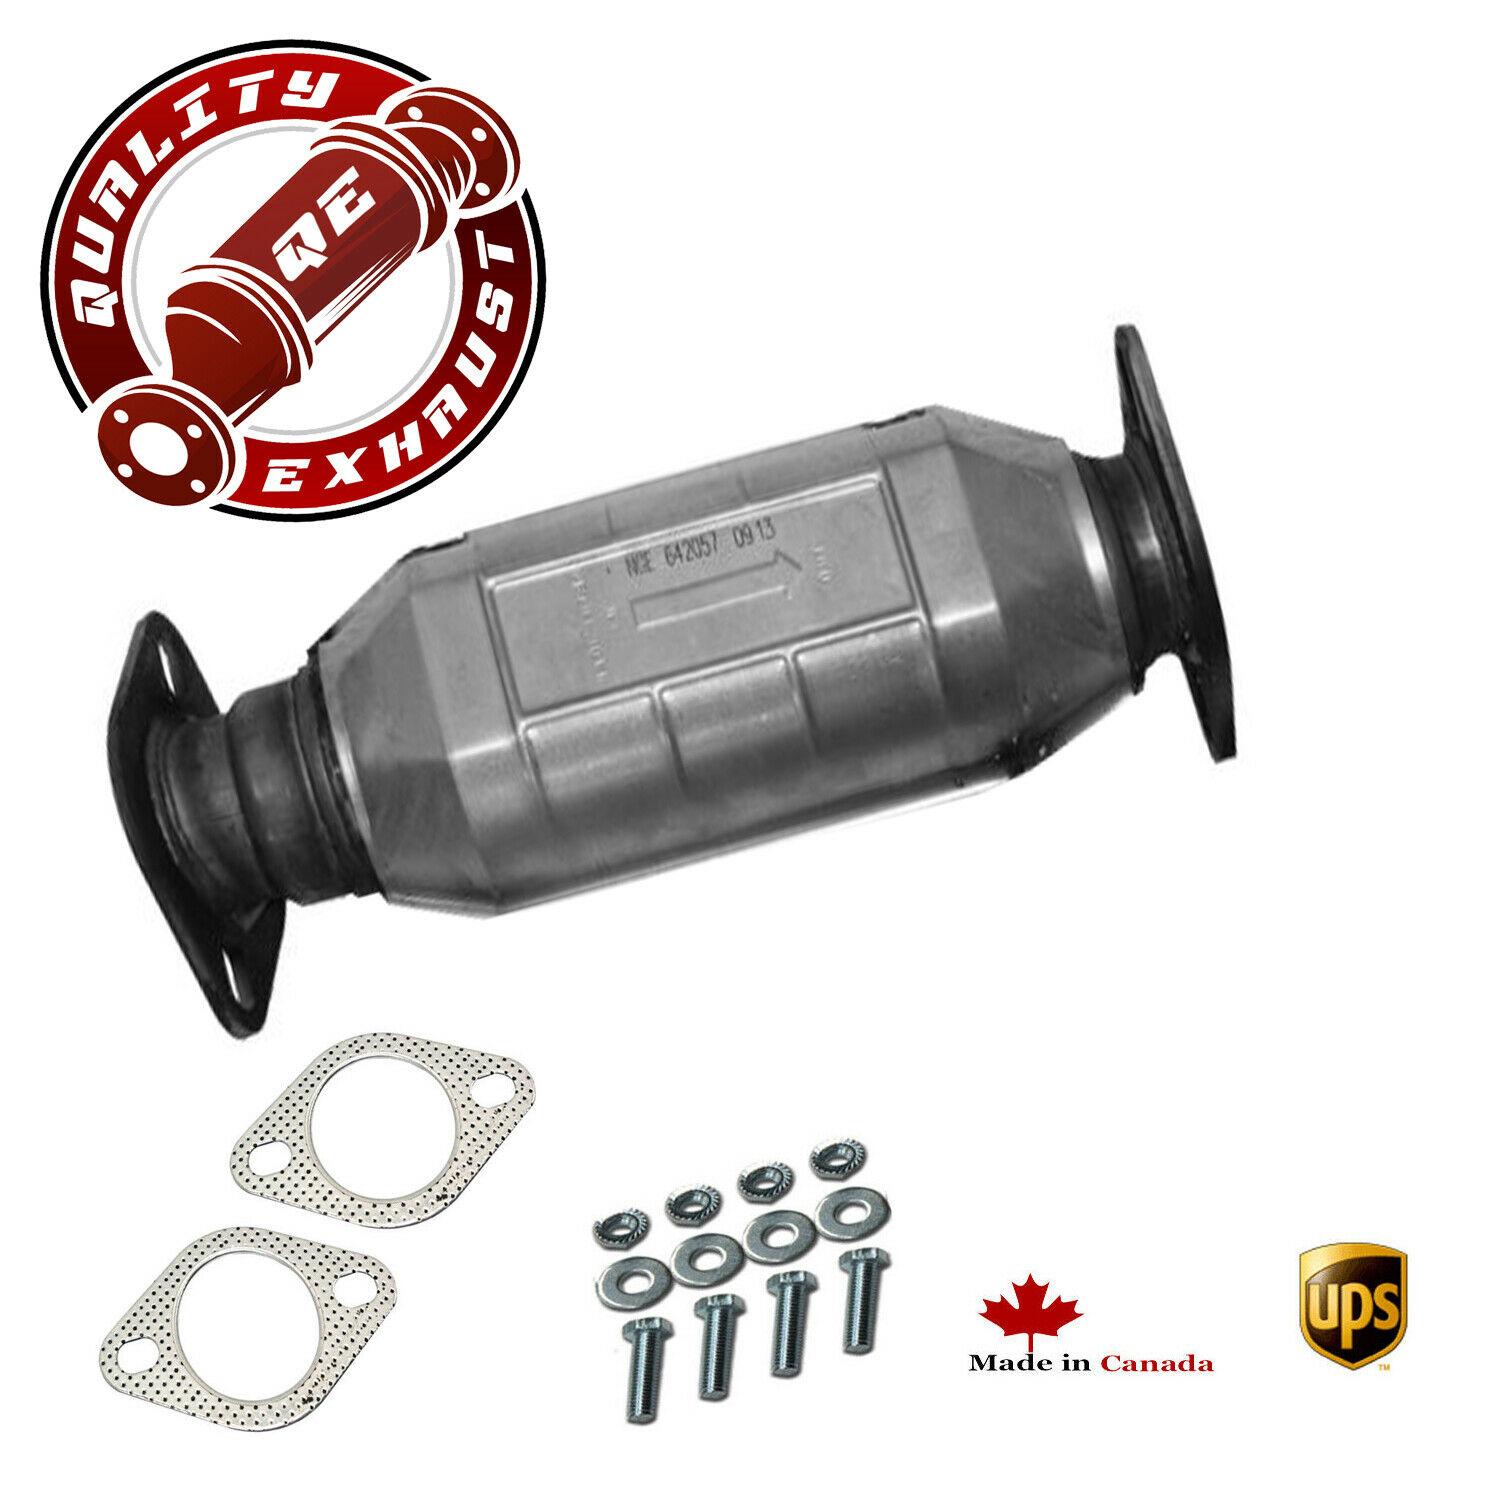 Rear Catalytic Converter Fits 2006-2010 Hyundai Accent 1.6lL Direct Fit